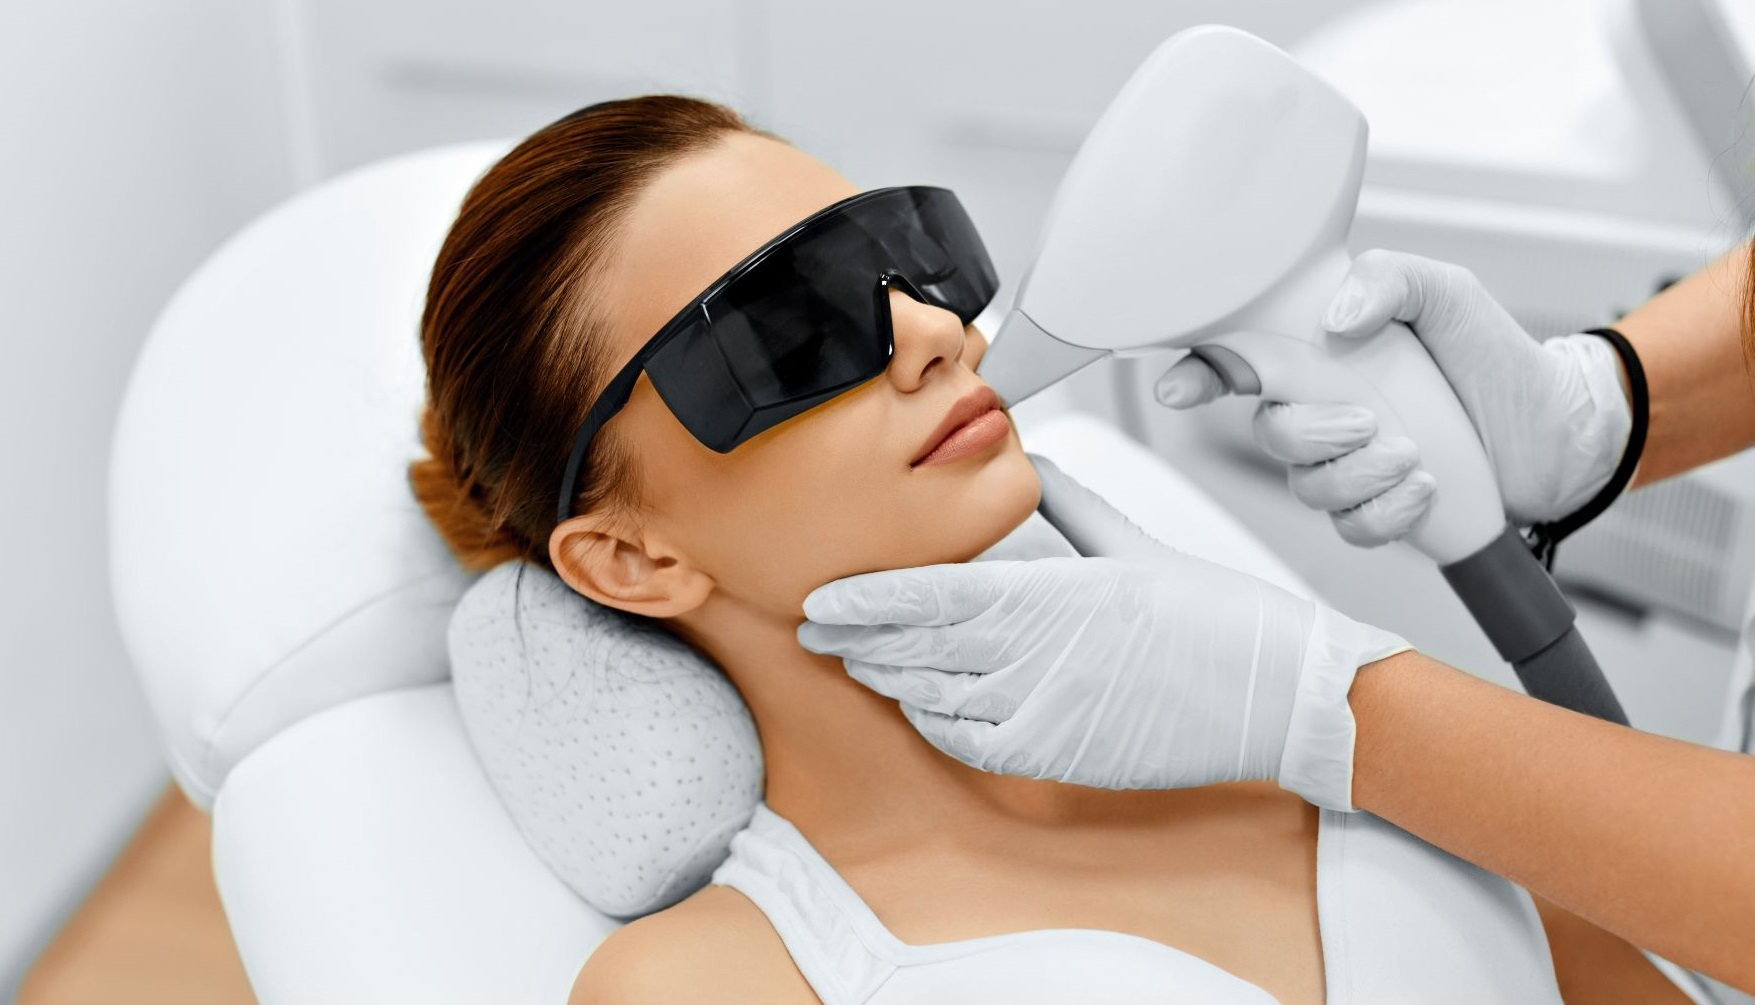 Laser Hair Removal - How Many Treatments Are Needed